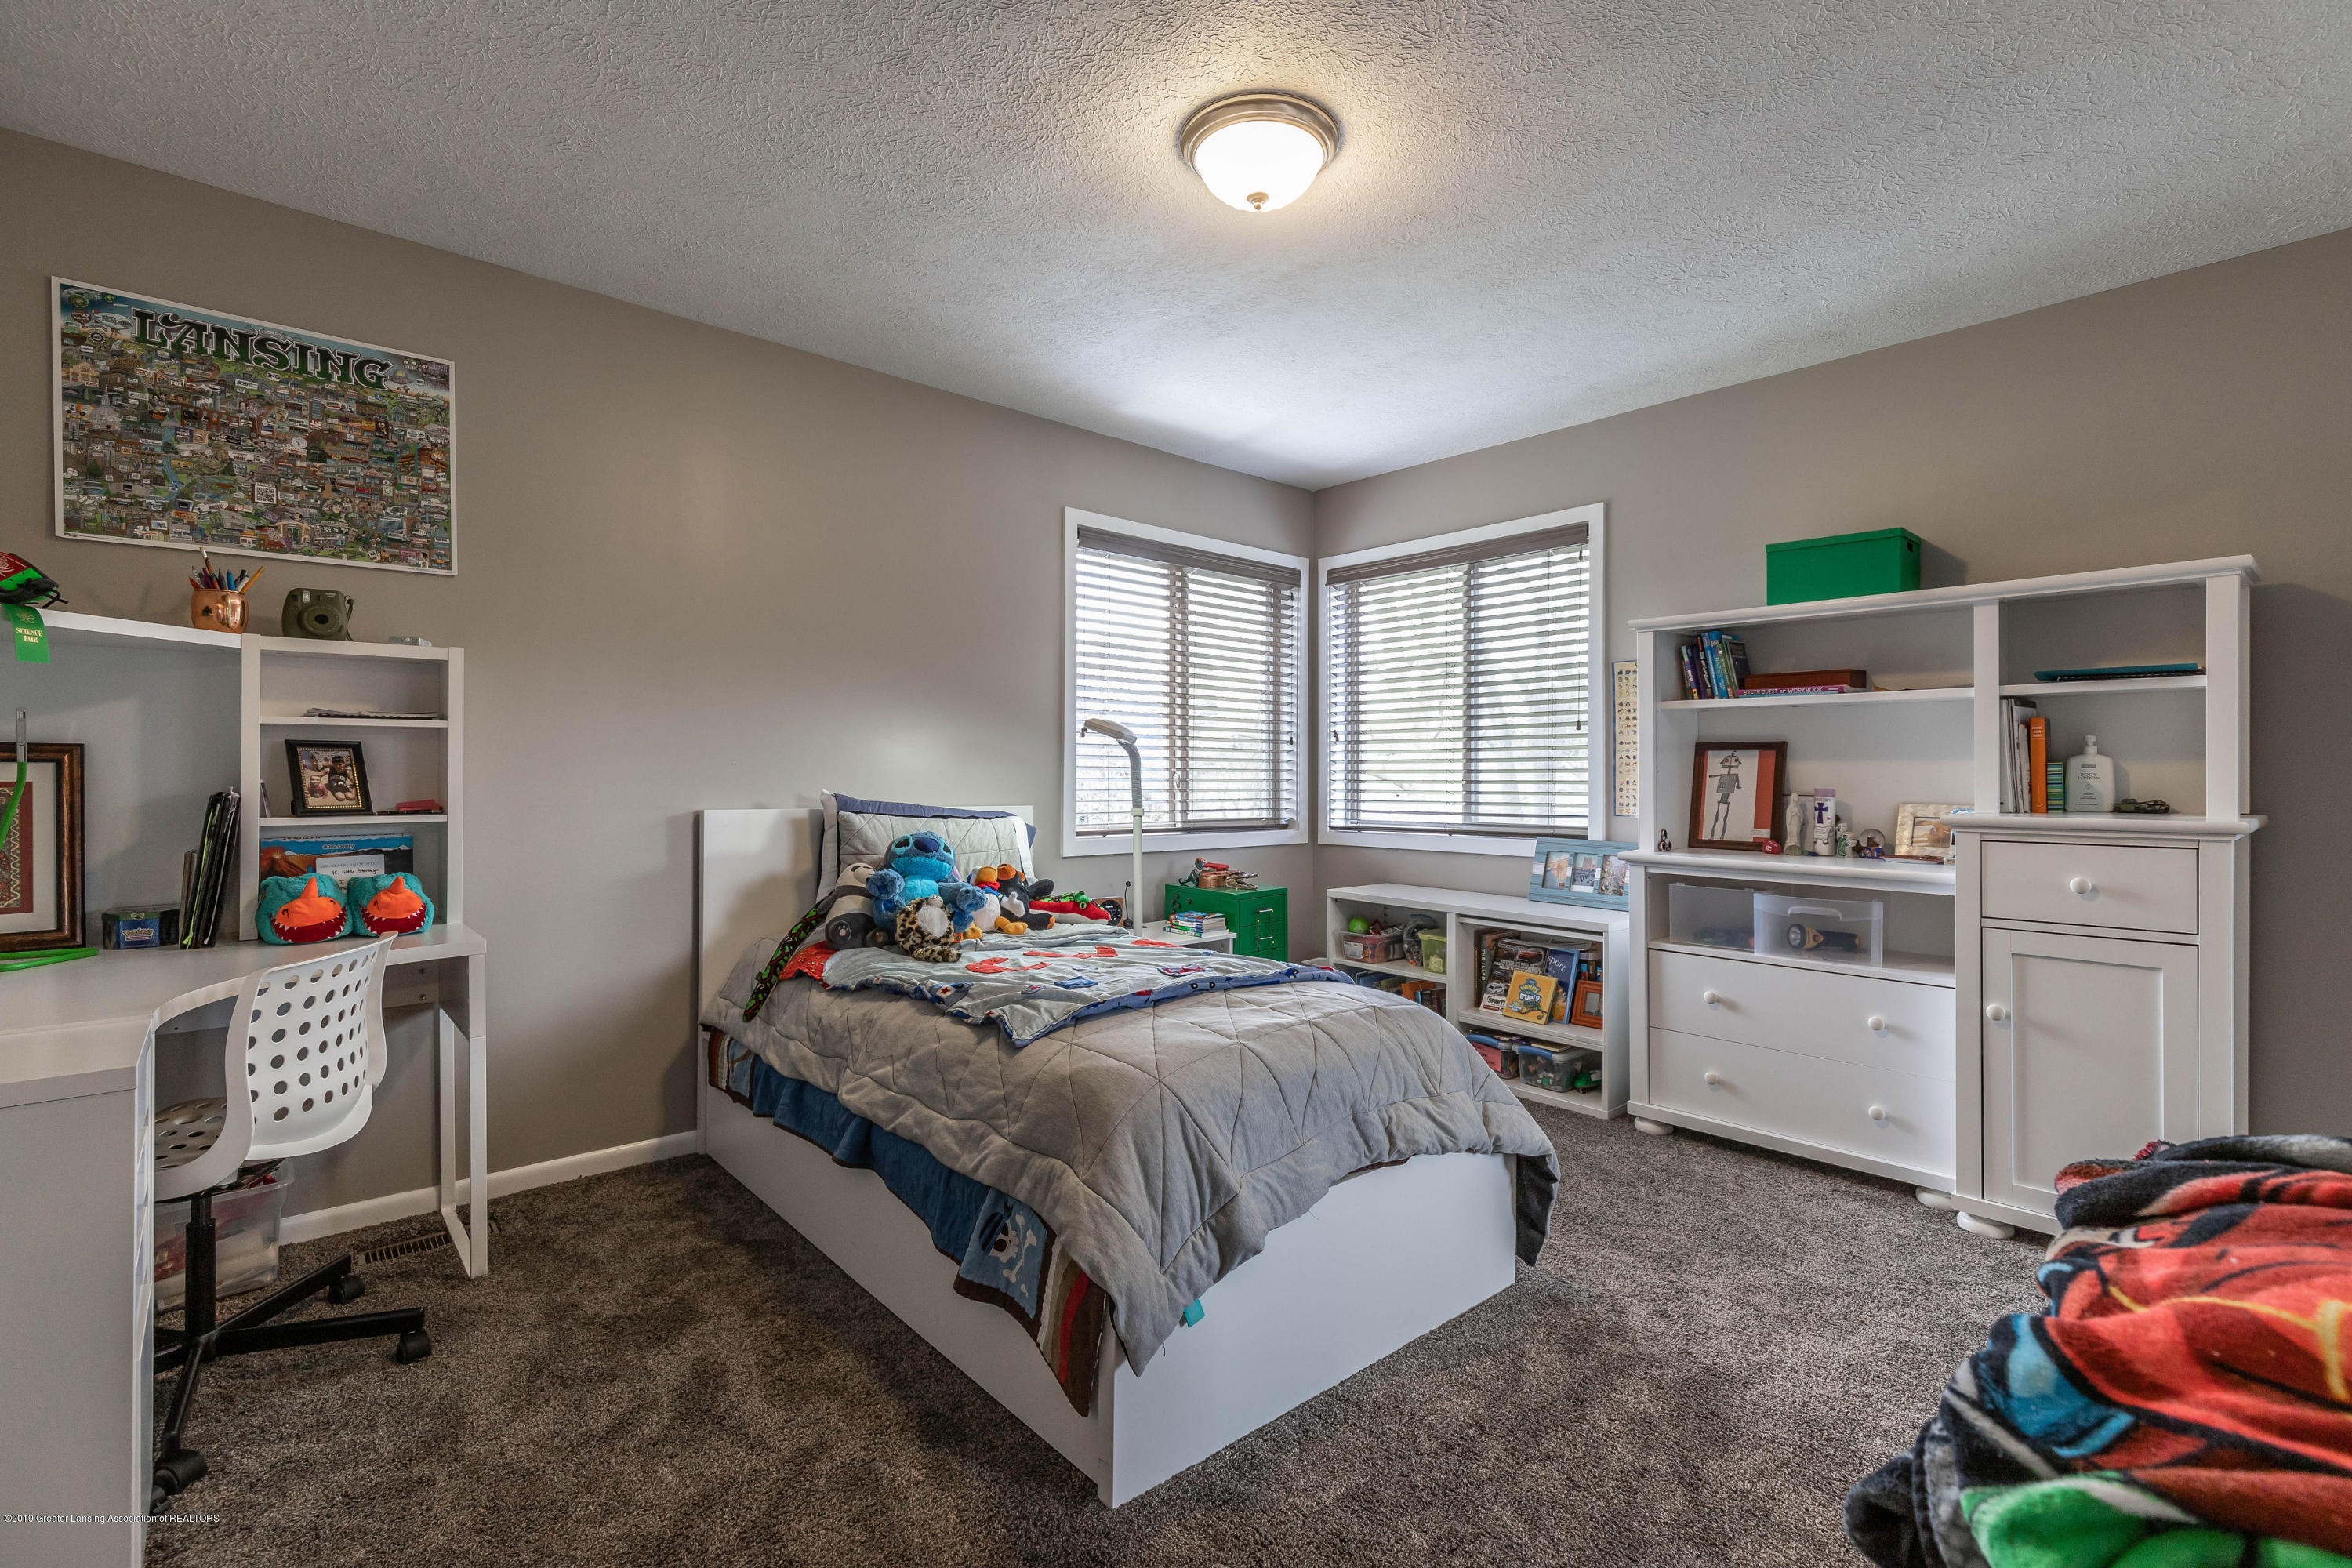 1701 Wyngarden Ln - Bedroom 3 - 49